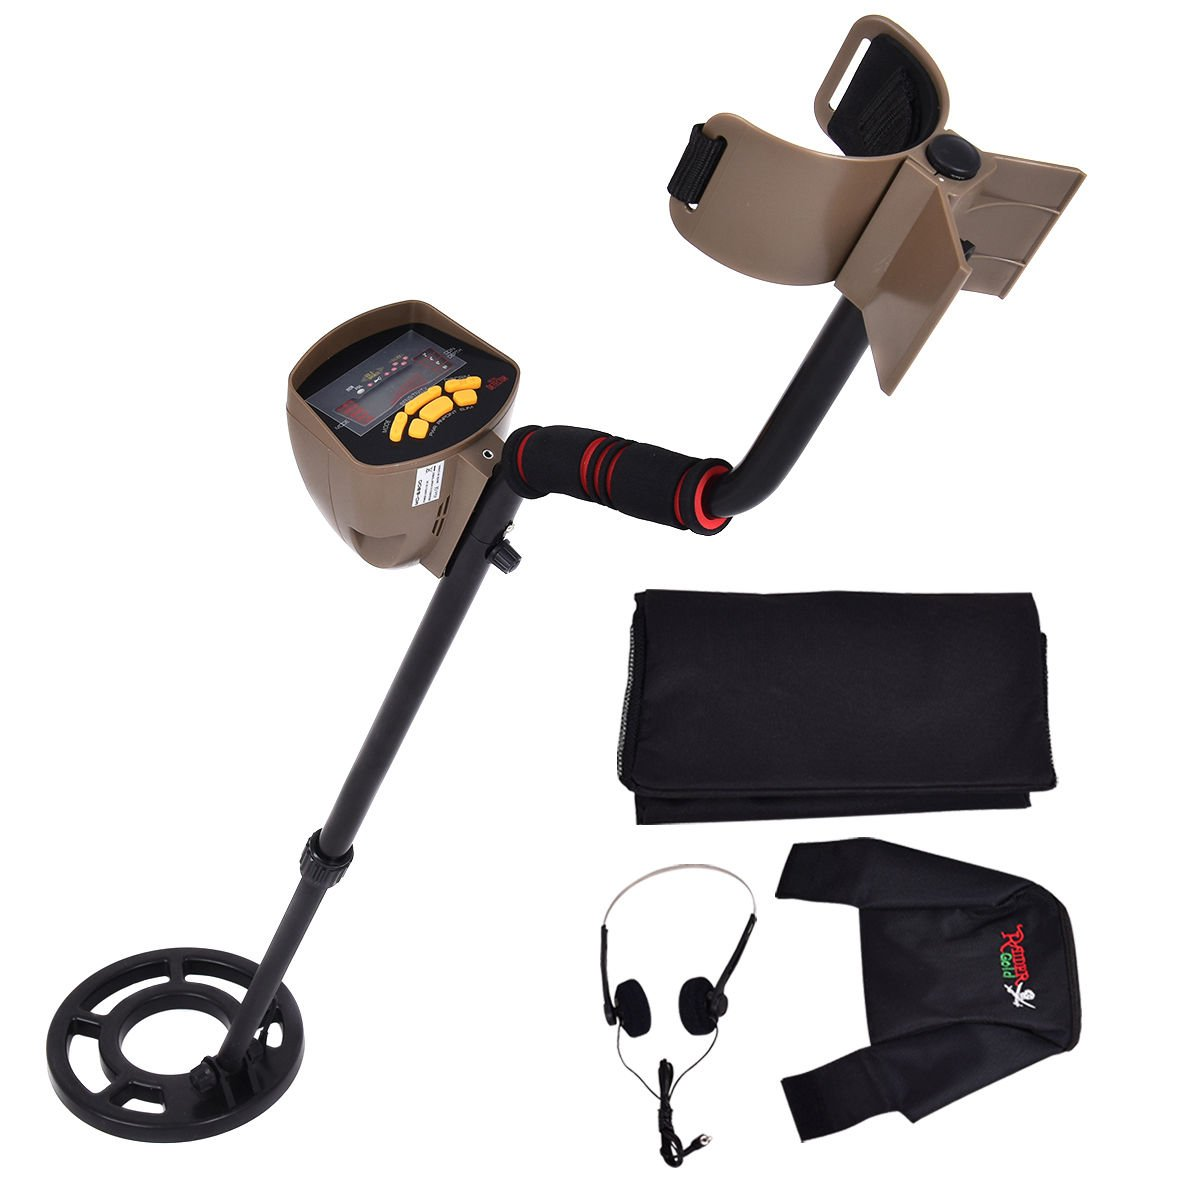 Amazon.com : Goplus Metal Detector Waterproof Coil Underground 8.3